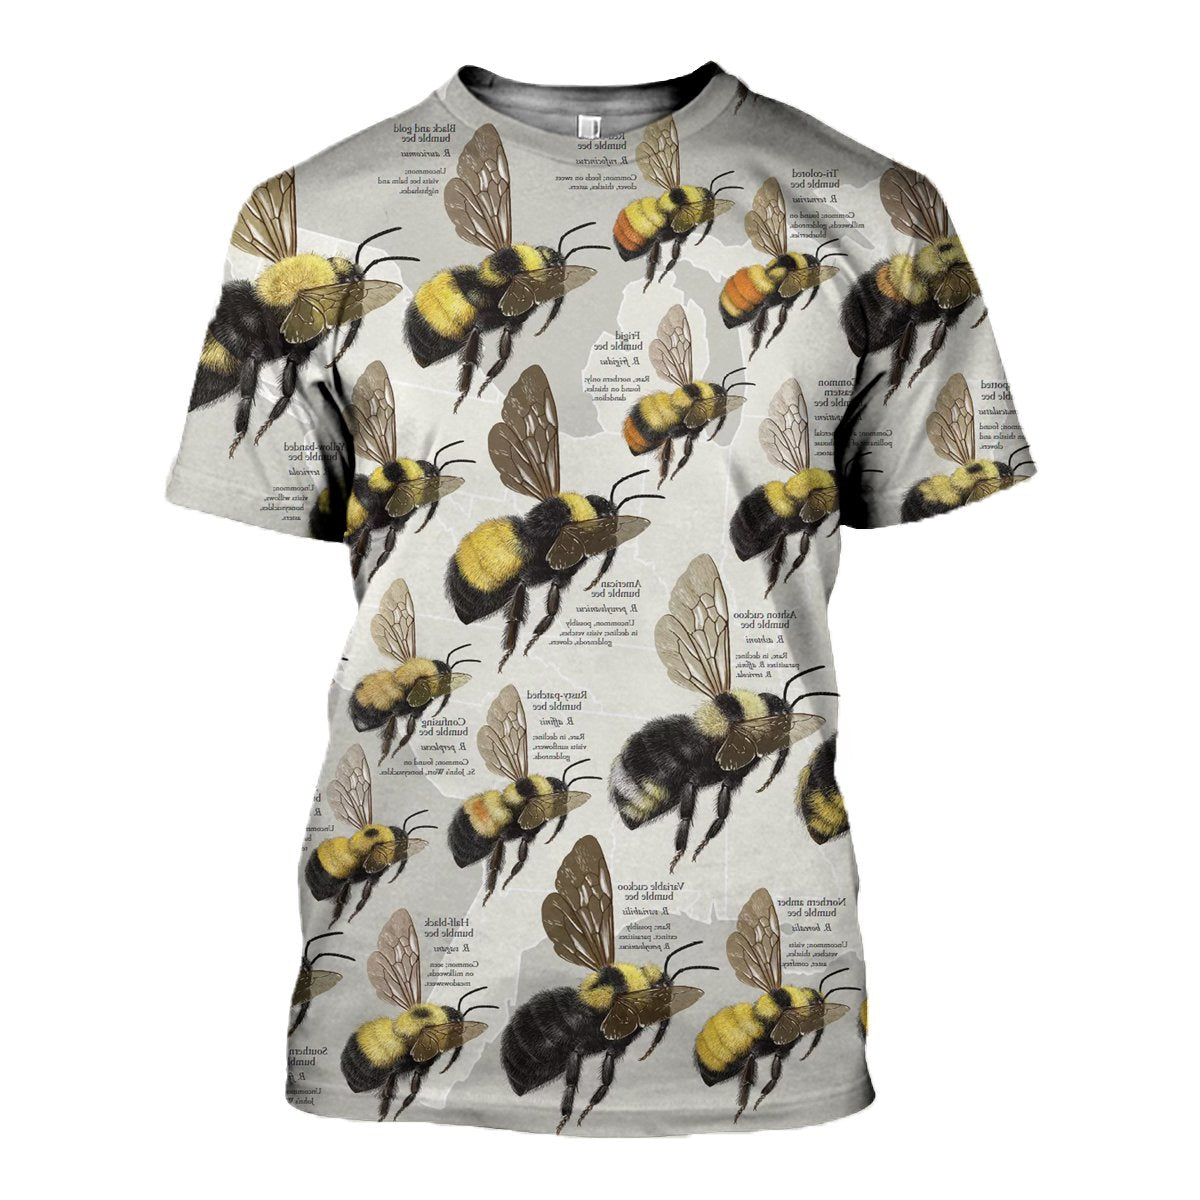 3D All Over Printed Bumble Bees Shirts and Shorts - gopowear.com